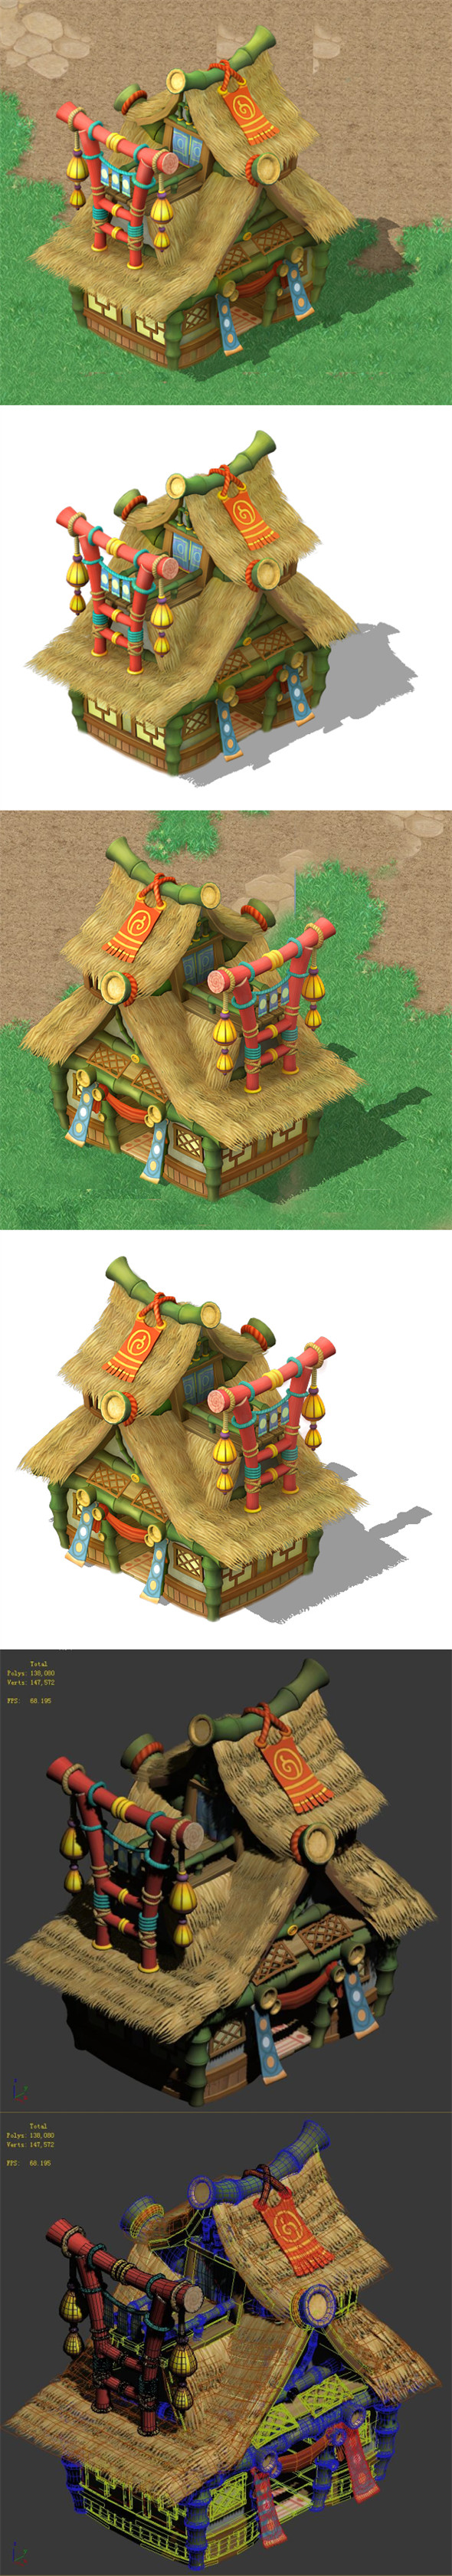 Cartoon World - House 04 - 3DOcean Item for Sale